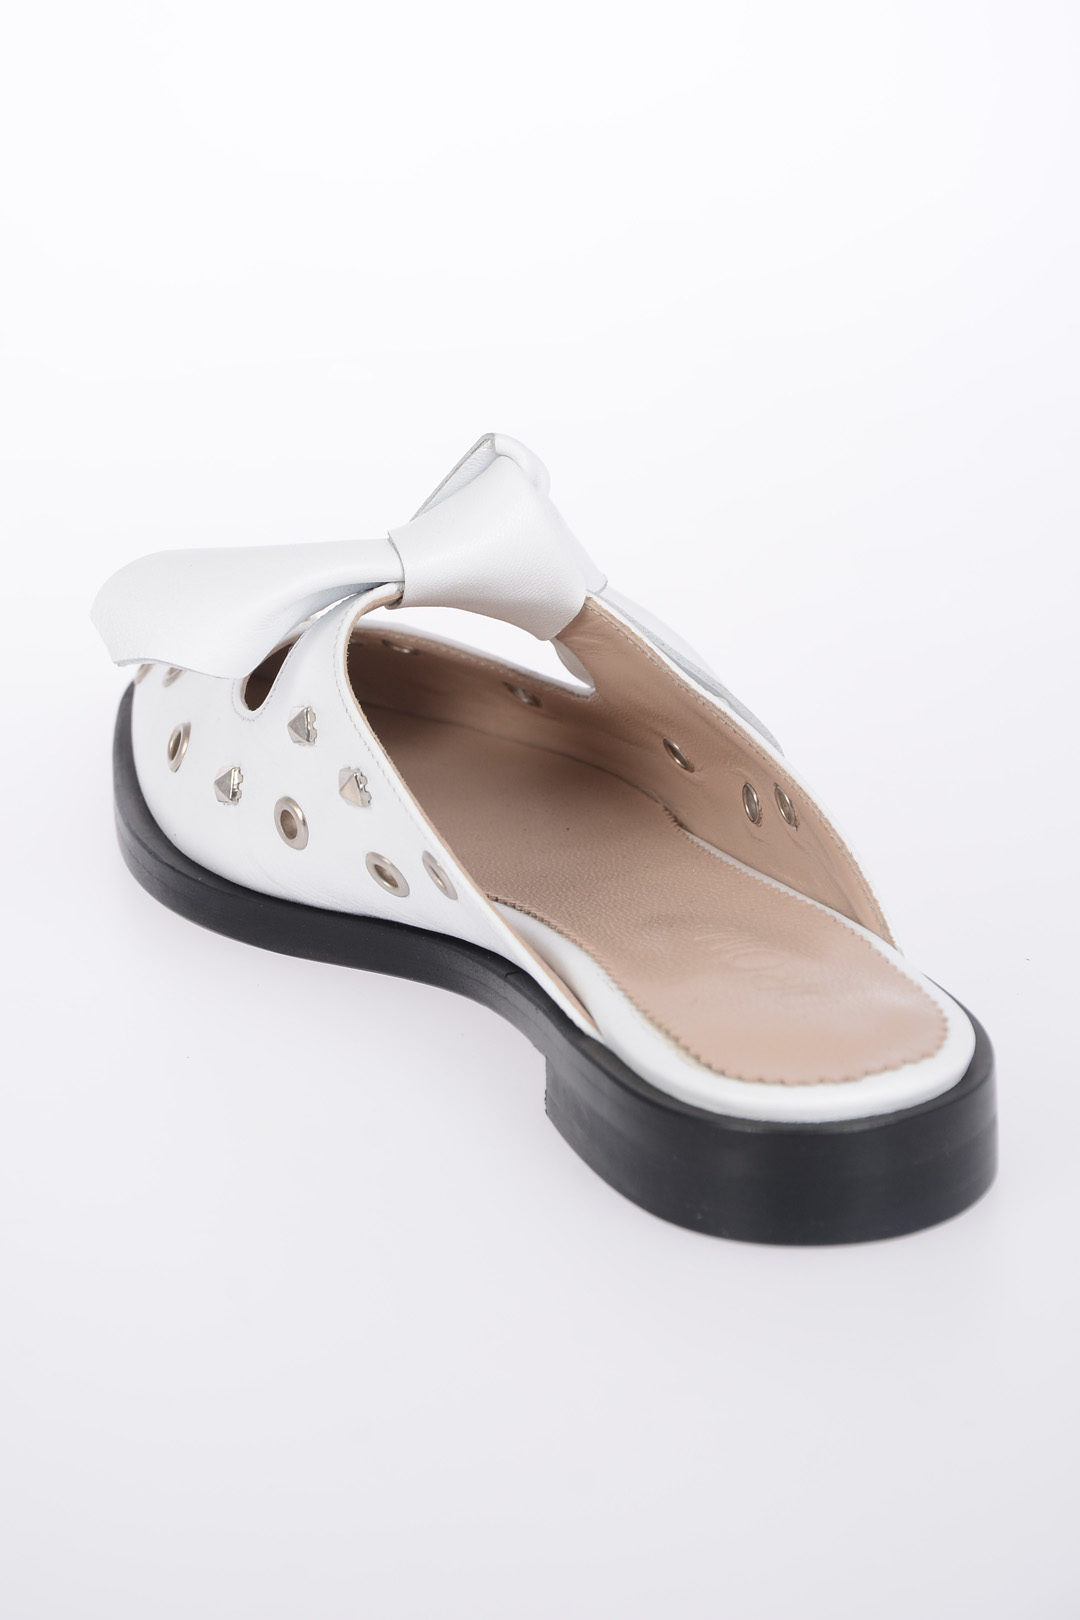 82d7a72f40e DROMe Studded Leather Mules women - Glamood Outlet